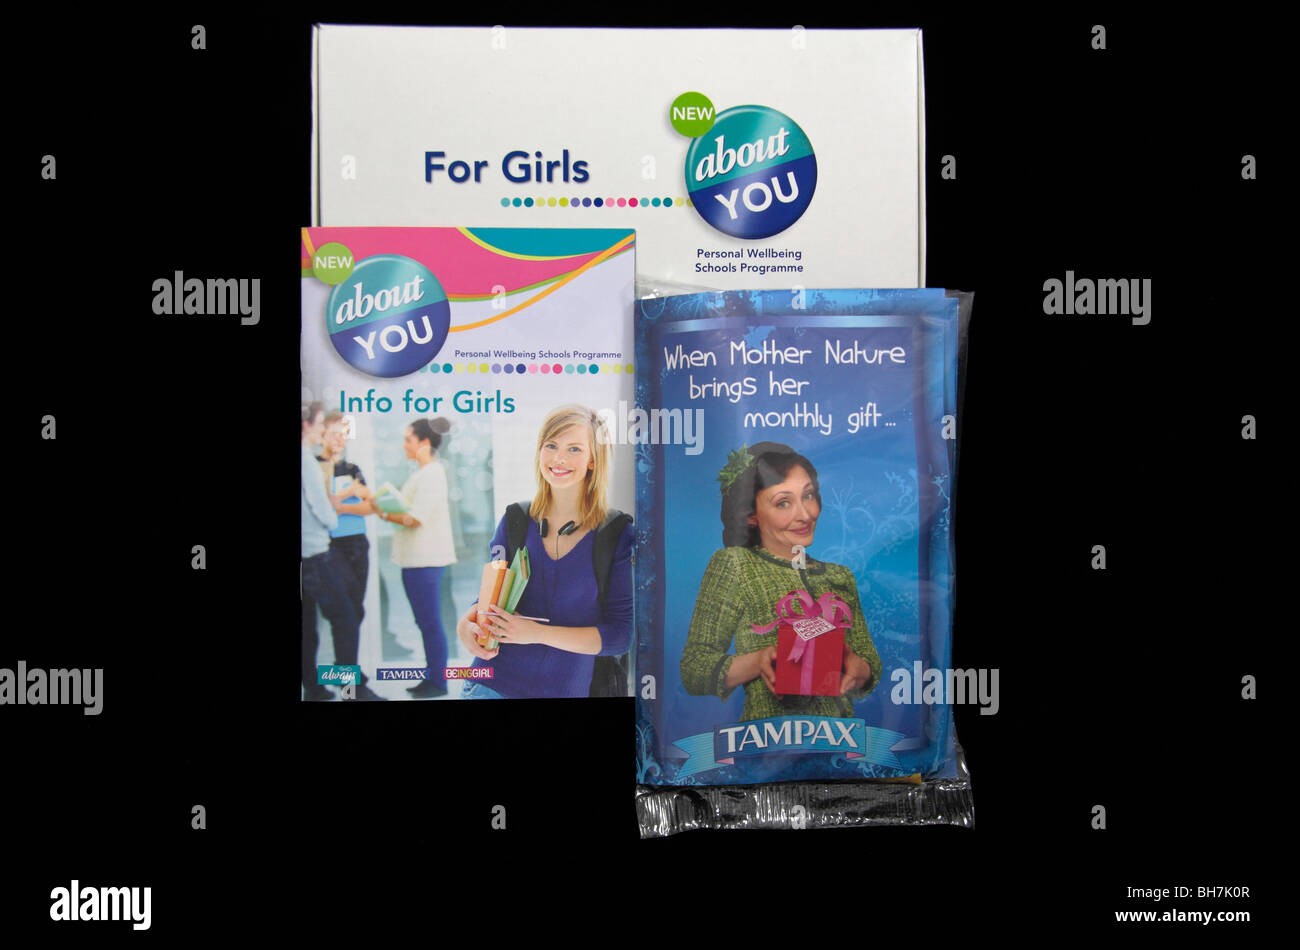 Items from a school information pack for teenage girls 'About You', (the Personal Wellbeing Schools Programme). - Stock Image